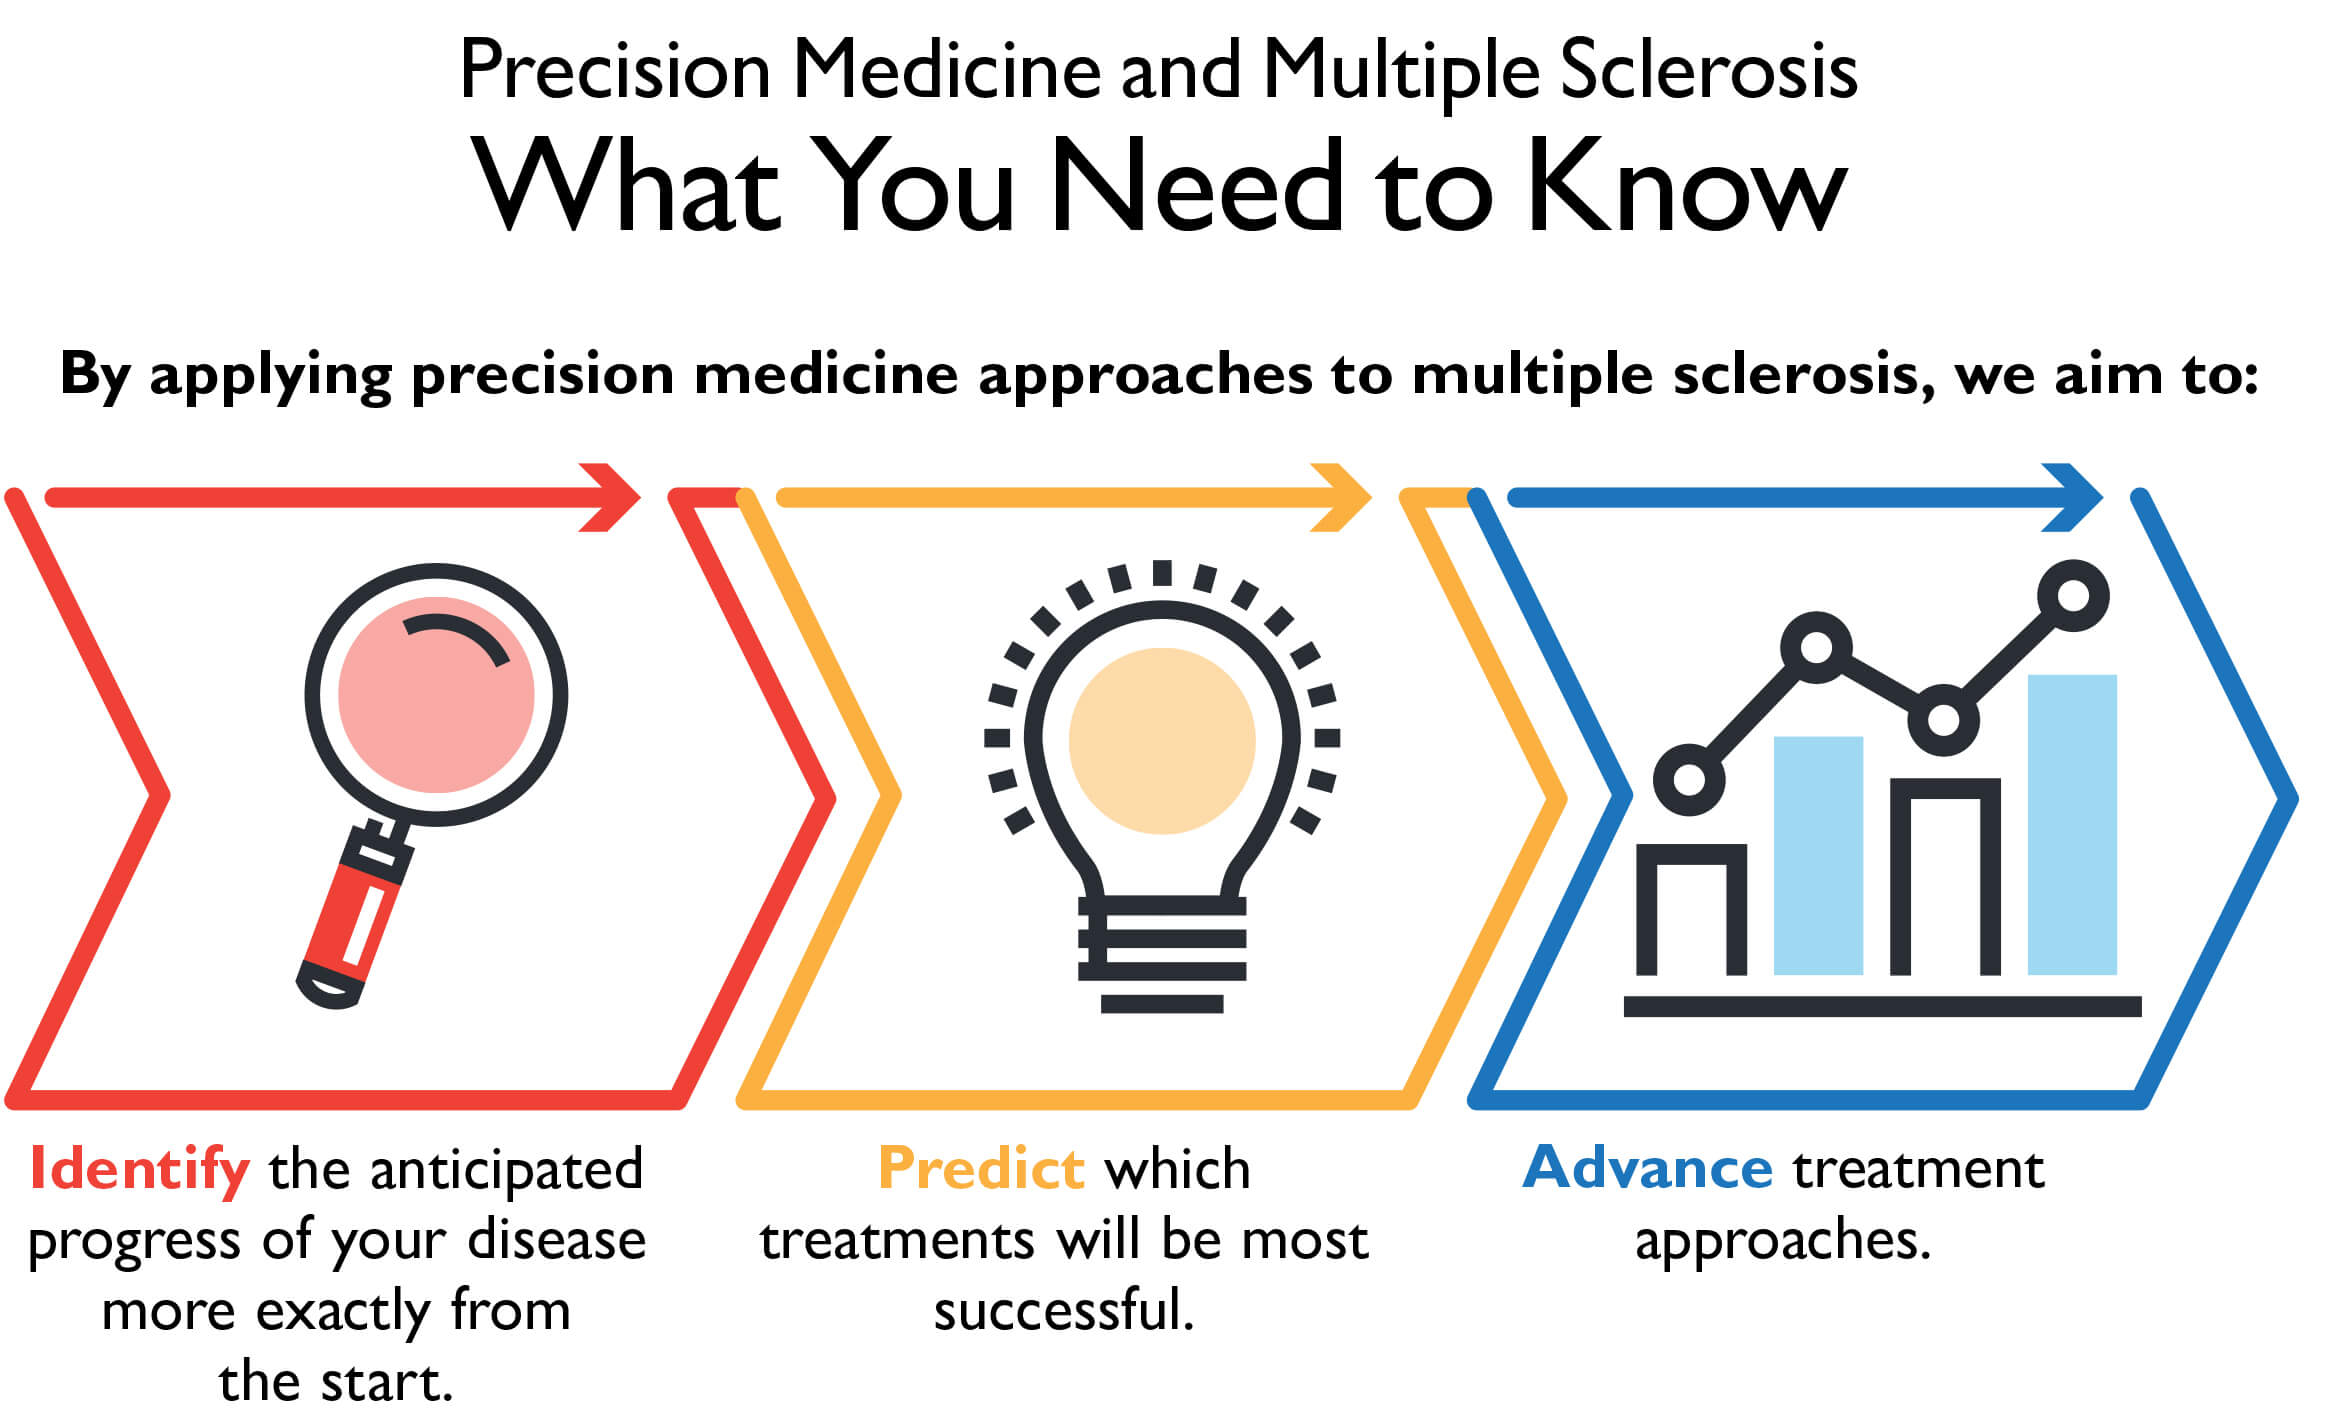 Infographic for Precision Medicine and Multiple Sclerosis: What you need to know. By applying precision medicine approaches to multiple sclerosis, we aim to 1, identify the anticiapted progress of your disease more exactly from the start, 2, predict which treatments will be the most successful, and 3, advance treatment approaches.